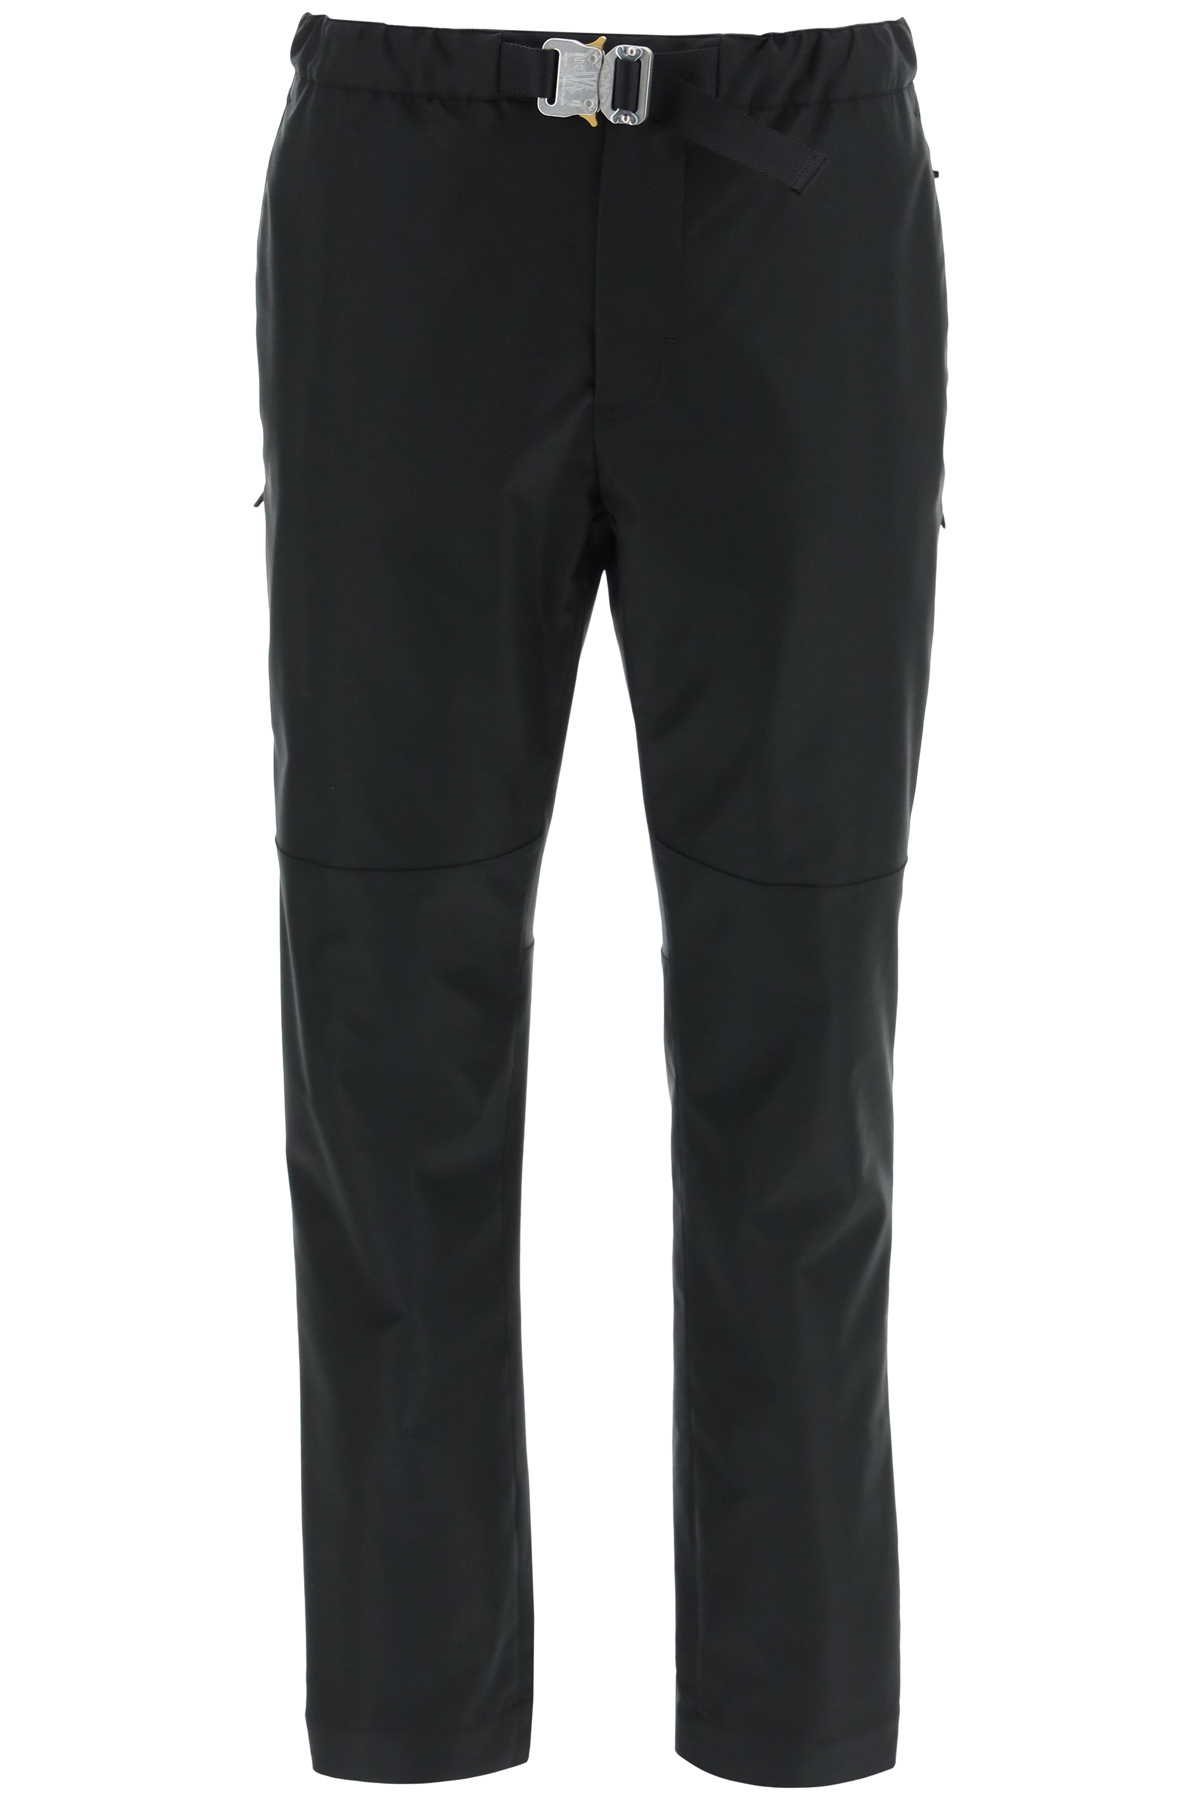 6 Moncler 1017 Alyx 9sm MONCLER GENIUS 6 SPORTS TROUSERS